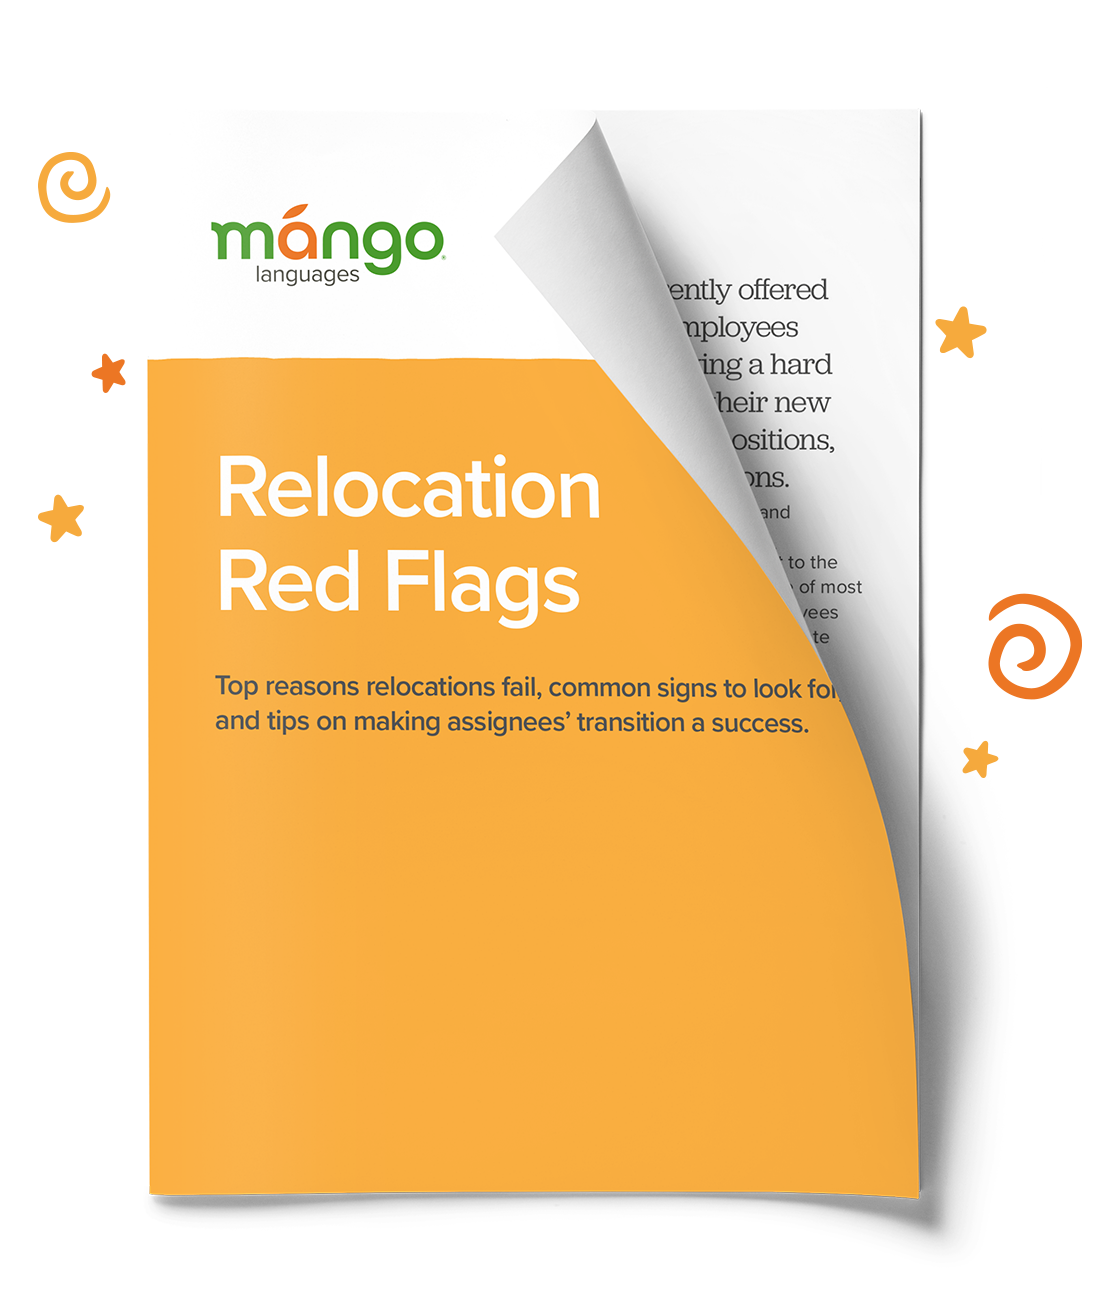 mango-inbound-relocation-red-flags.png